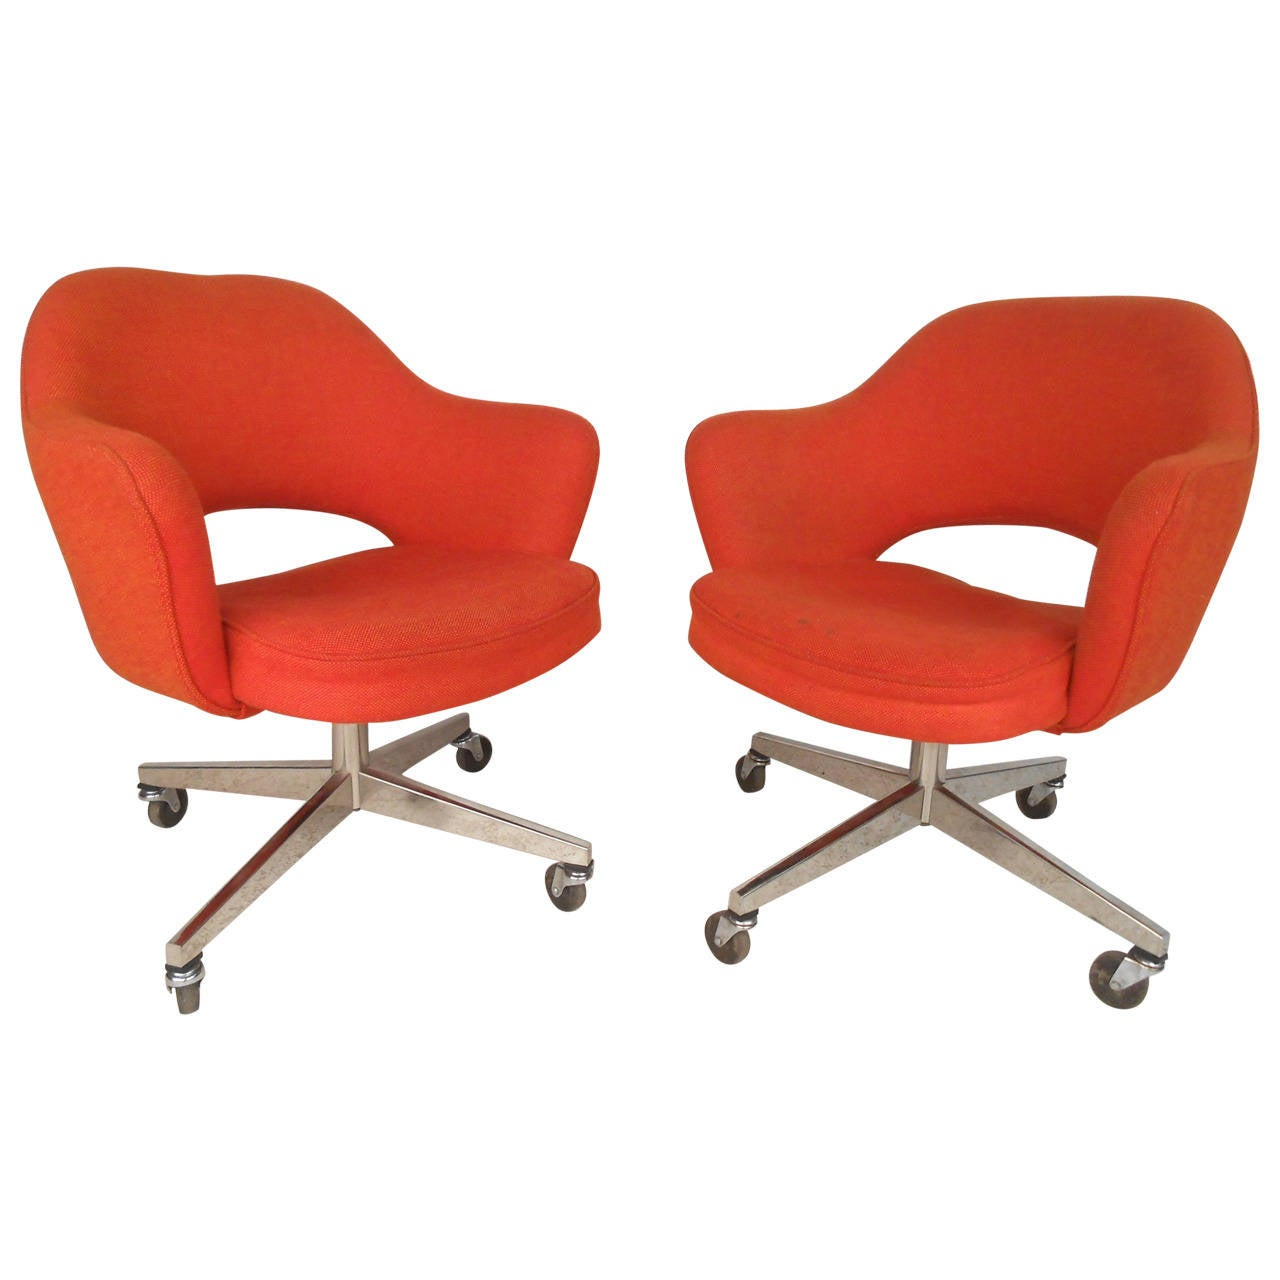 Roller Chairs Eero Saarinen Designed Rolling Chairs For Knoll For Sale